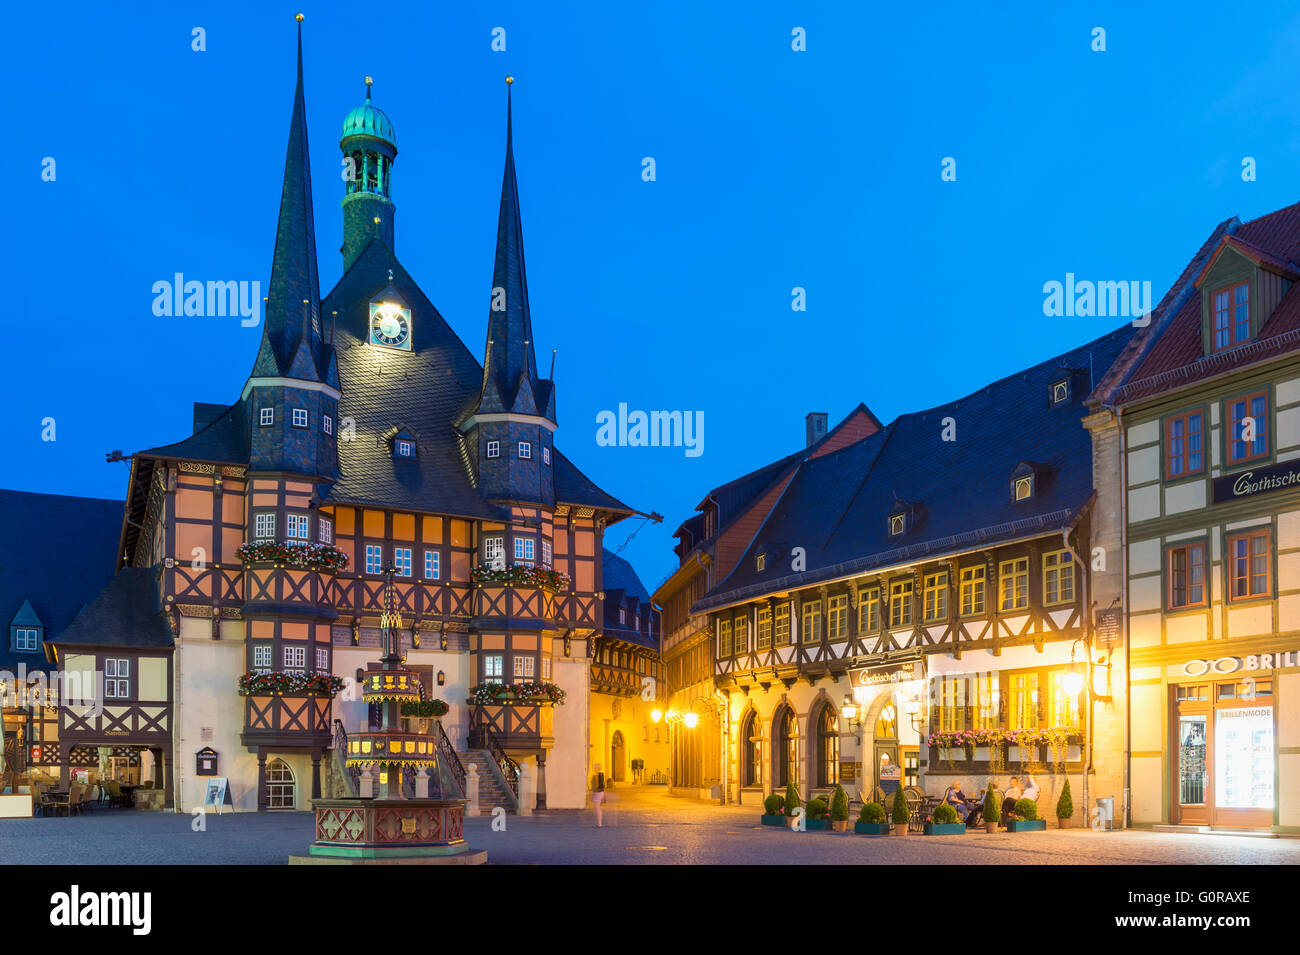 Market square and Town Hall at twilight, Wernigerode, Harz, Saxony-Anhalt, Germany - Stock Image